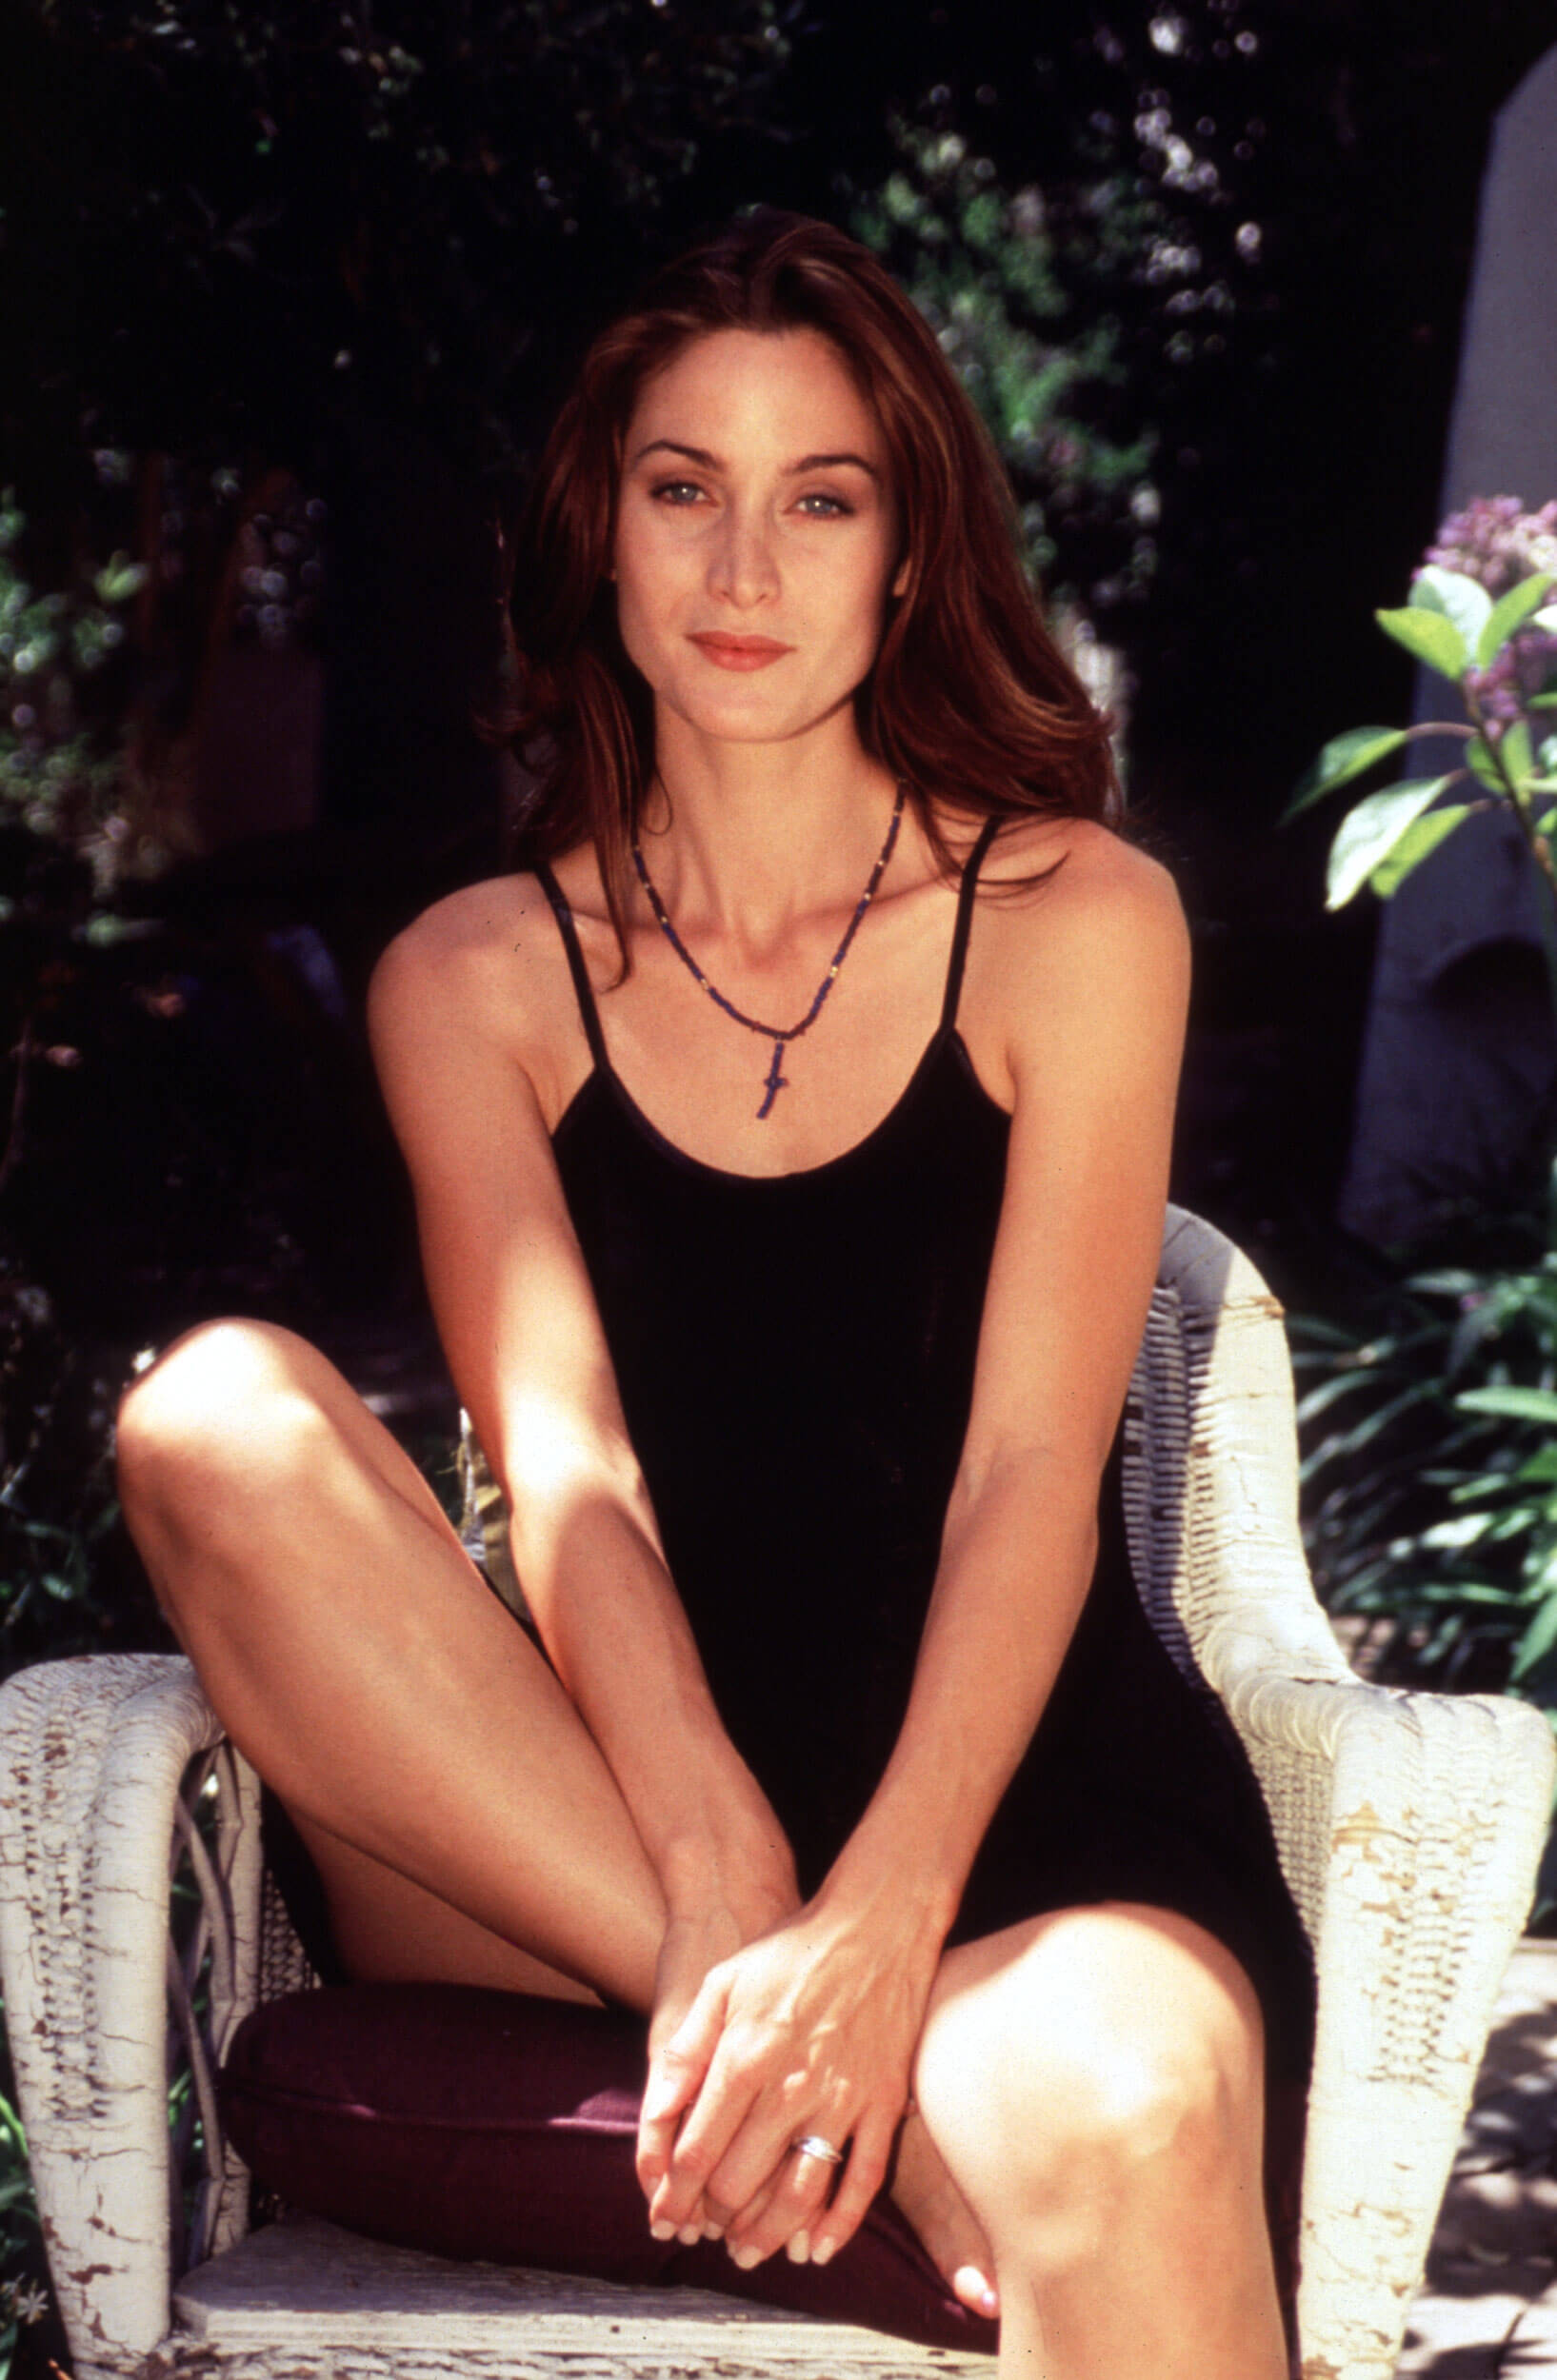 Carrie-Anne Moss hot pictures